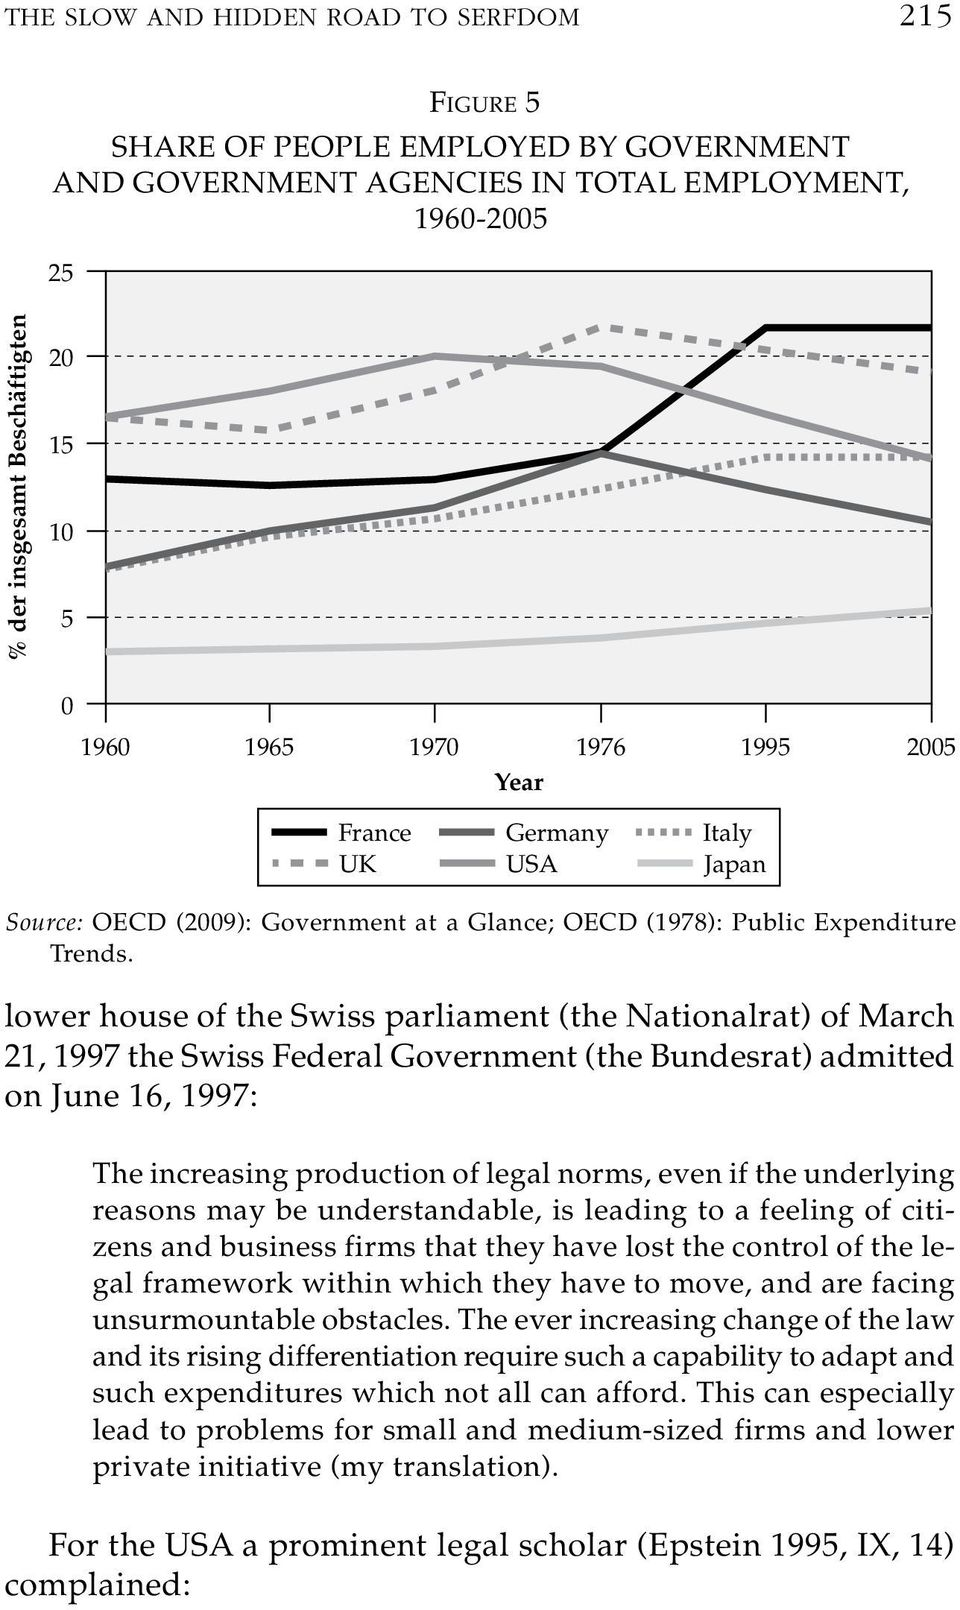 lower house of the Swiss parliament (the Nationalrat) of March 21, 1997 the Swiss Federal Government (the Bundesrat) admitted on June 16, 1997: The increasing production of legal norms, even if the